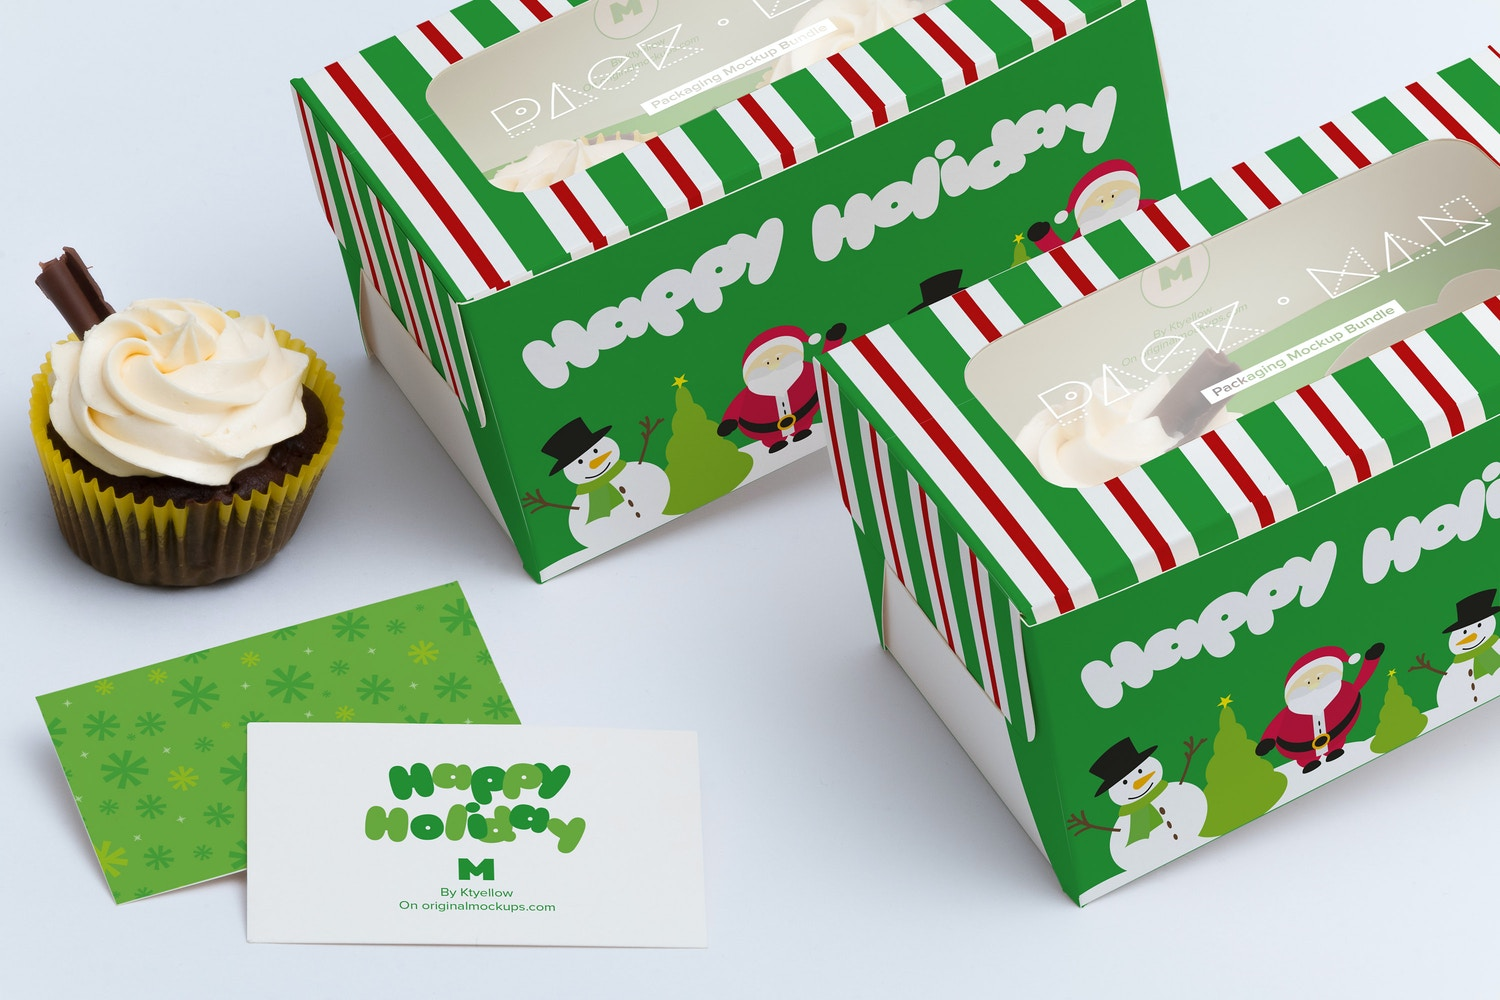 Two Cupcake Box Mockup 04 by Ktyellow  on Original Mockups